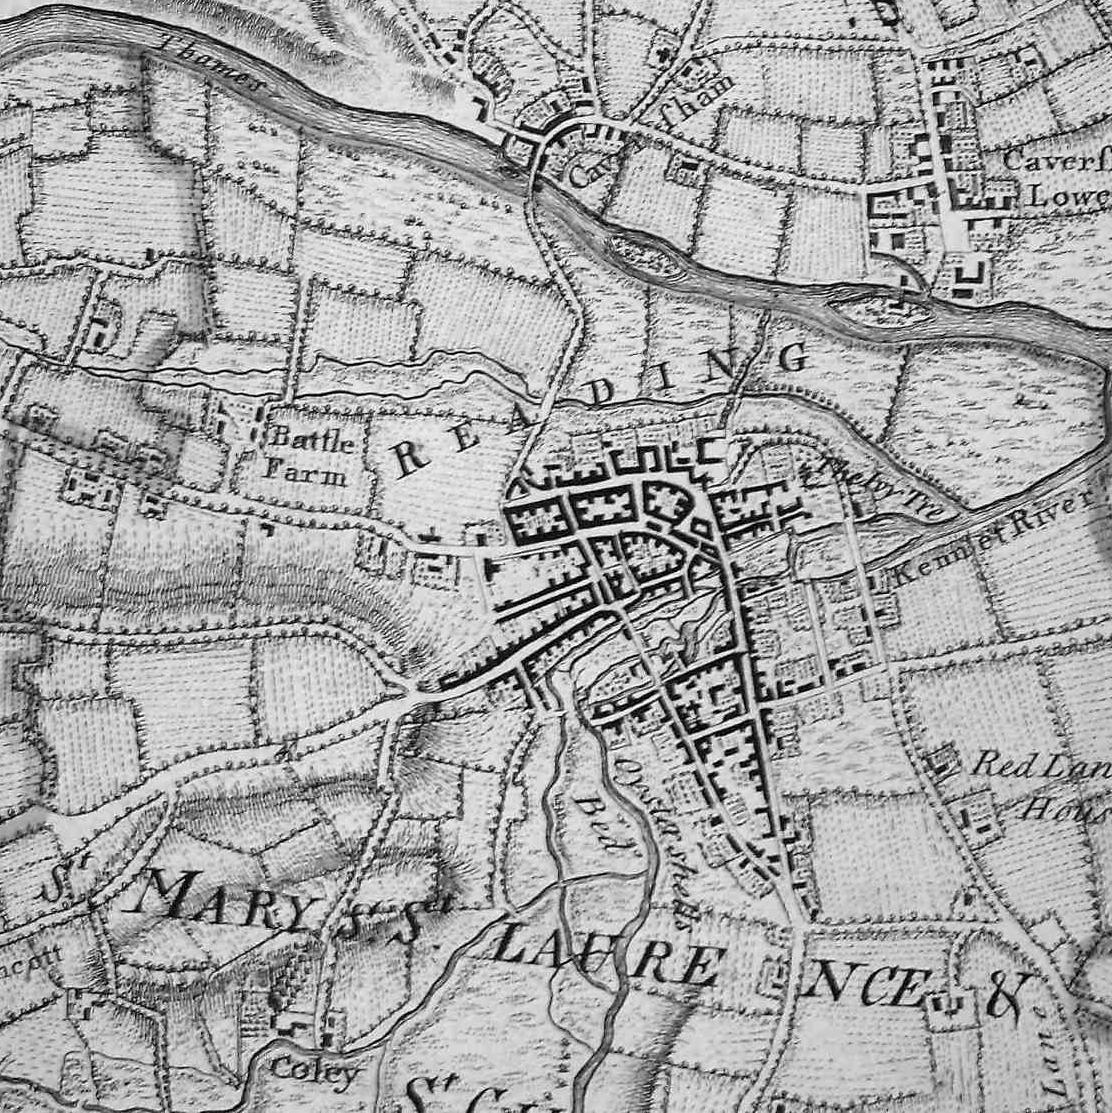 Reading and Caversham from John Rocques Map of Berkshire 1761 (TNA, MR1/677)